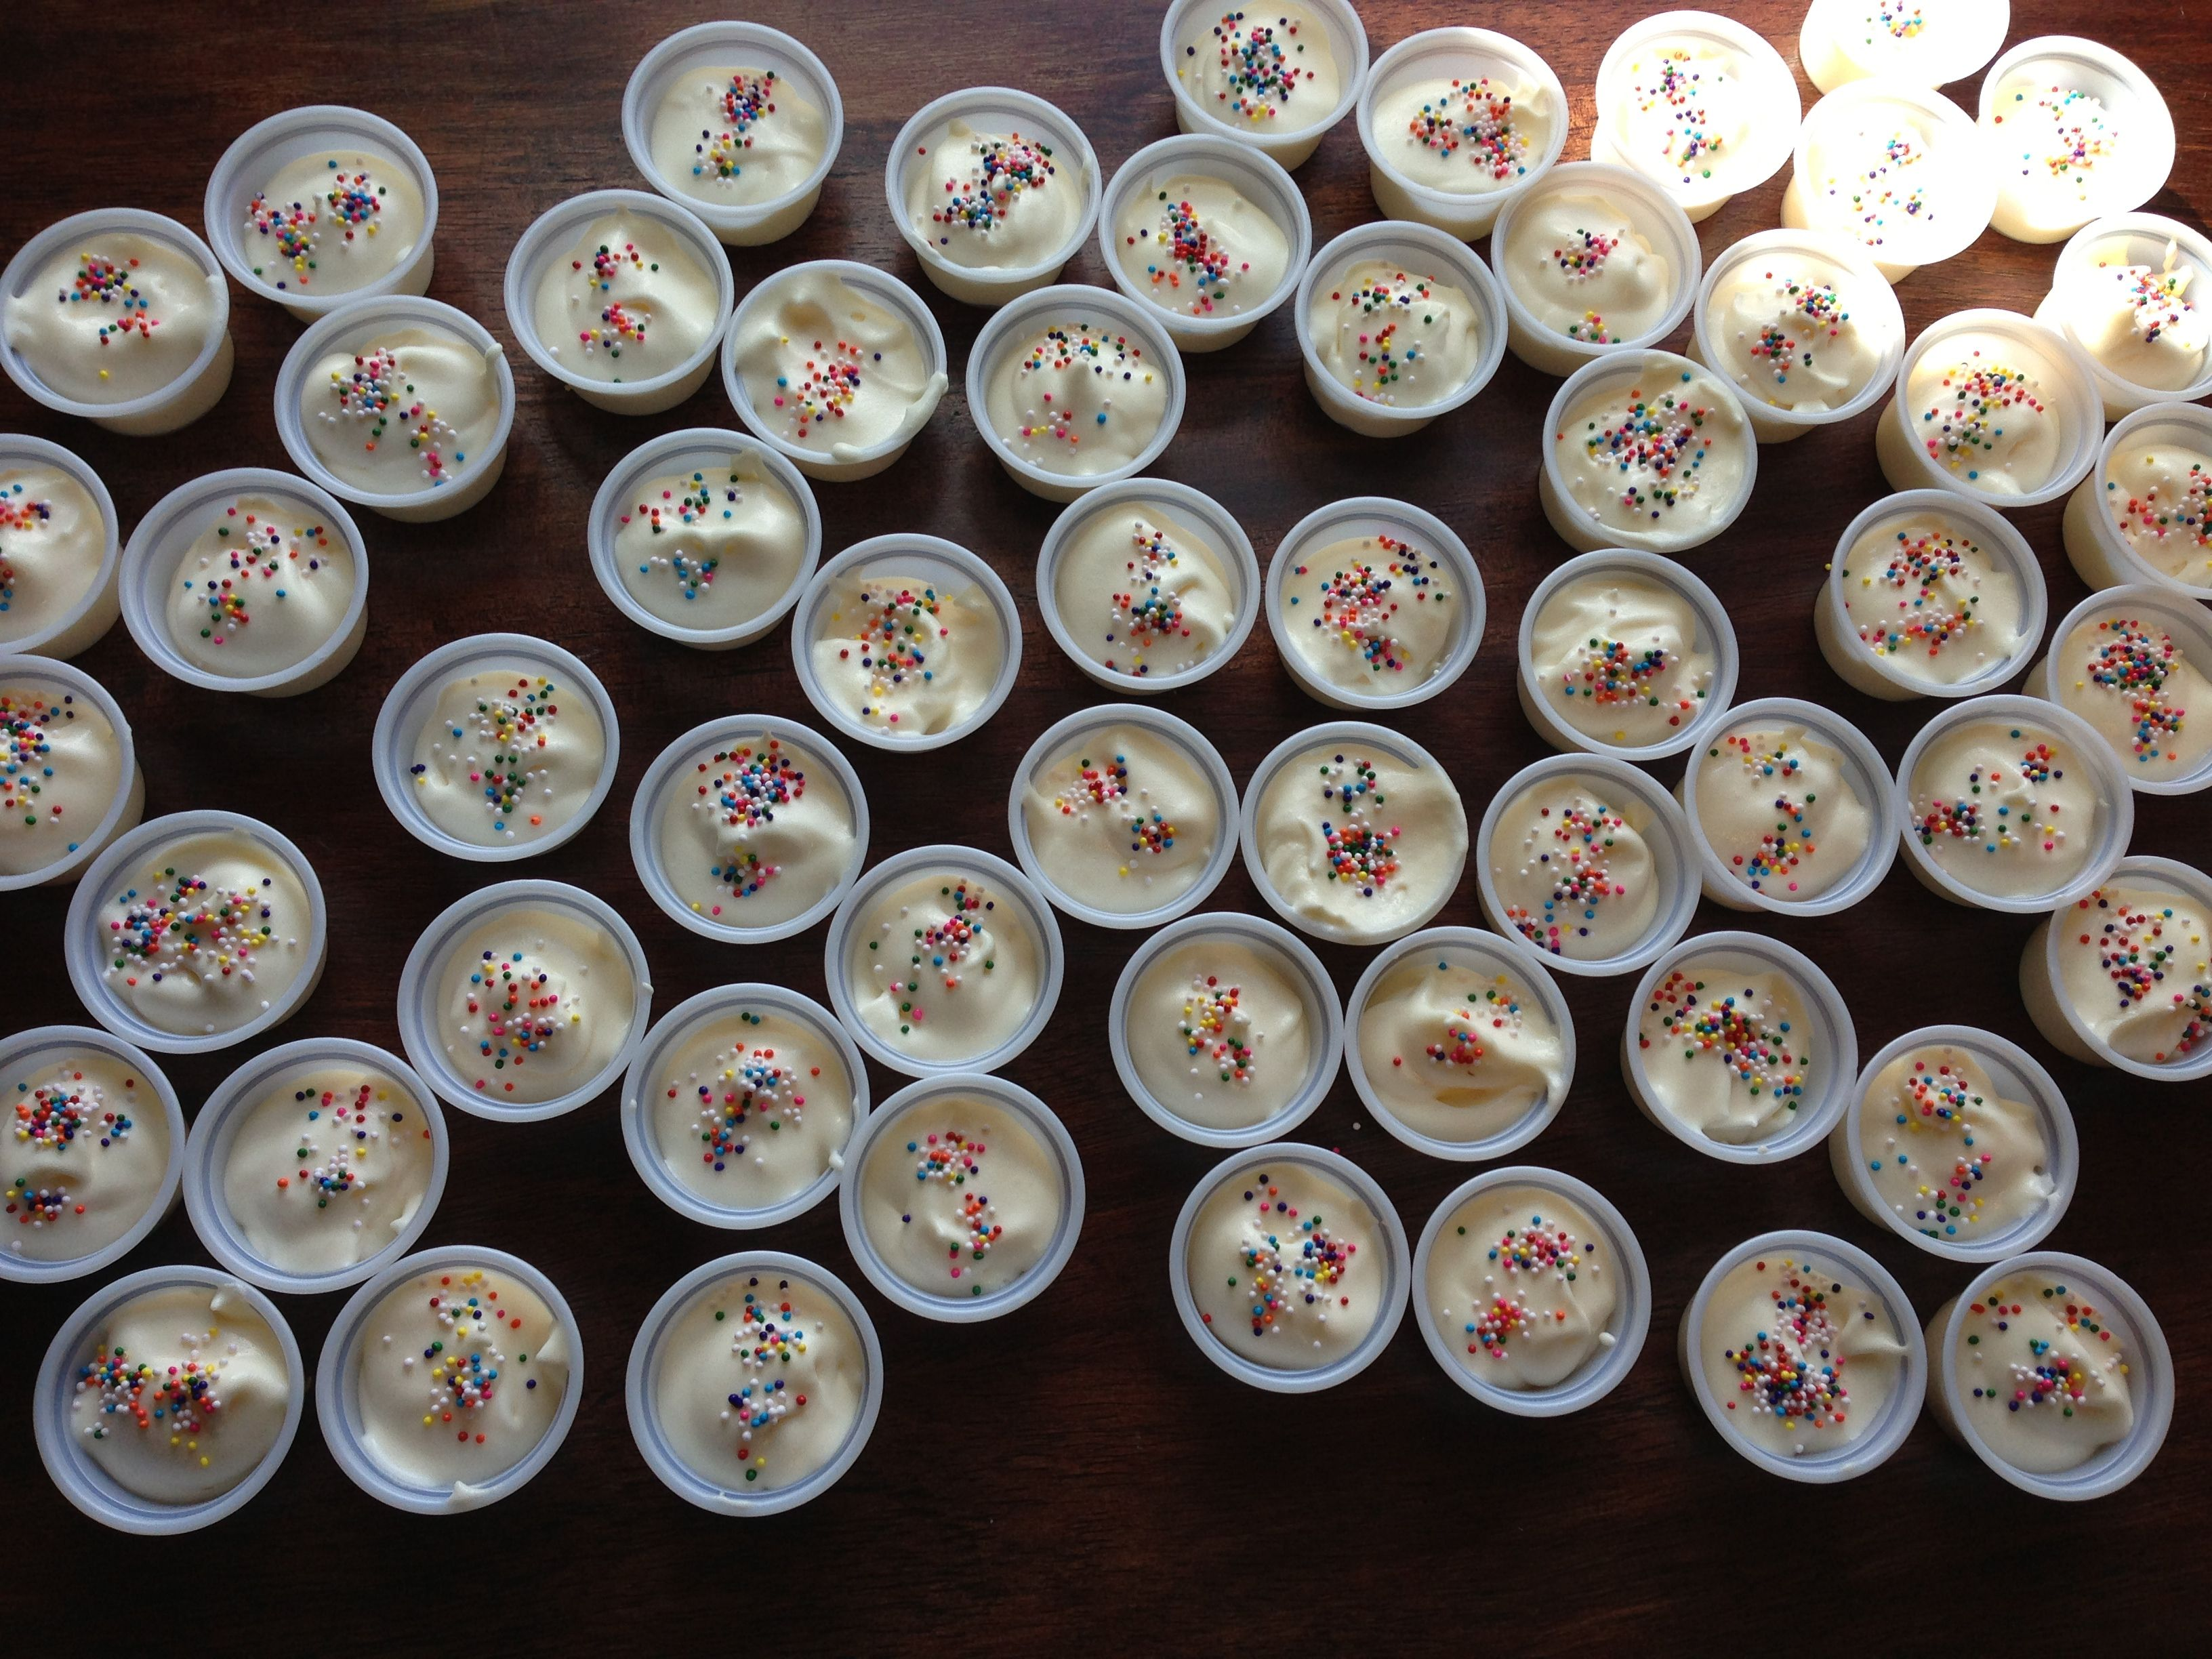 BIRTHDAY CAKE pudding shots 1 pkg instant pudding cheesecake flavor